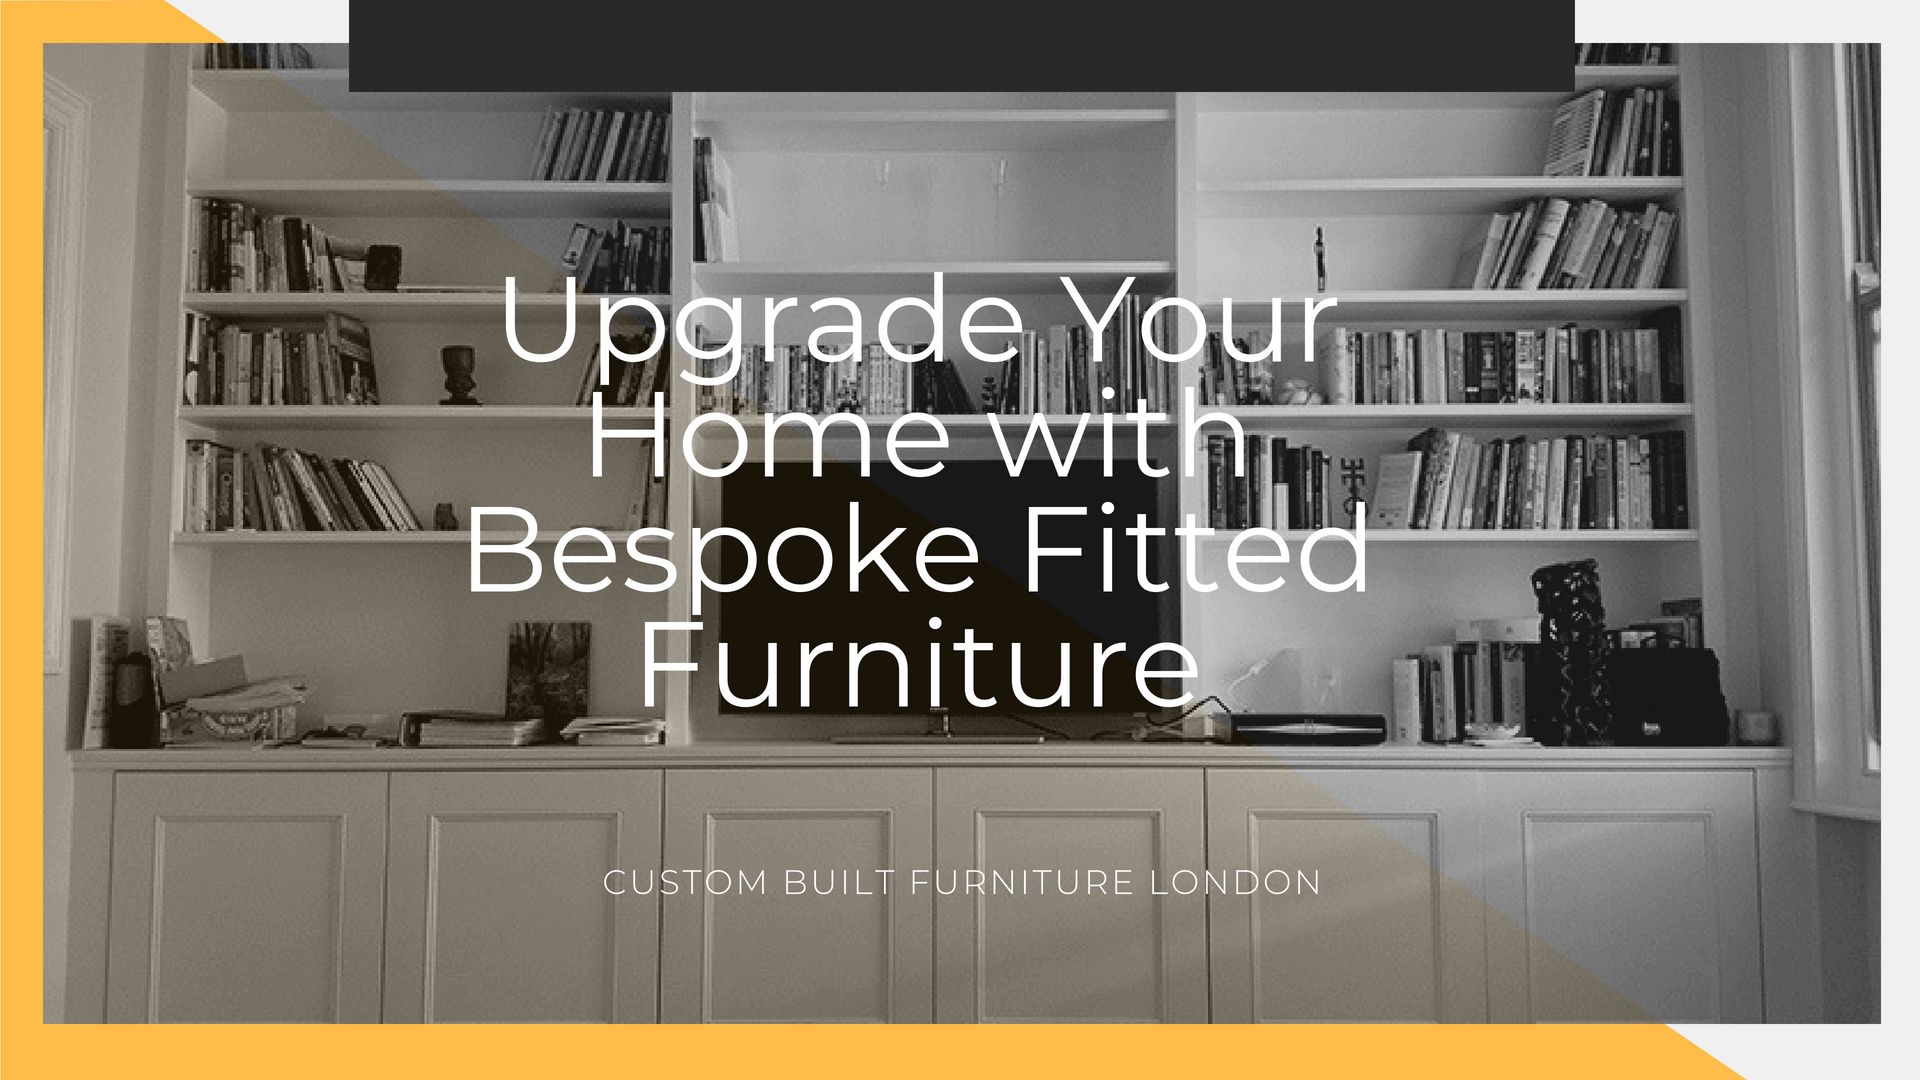 Add value to any home with bespoke fitted furniture fitted